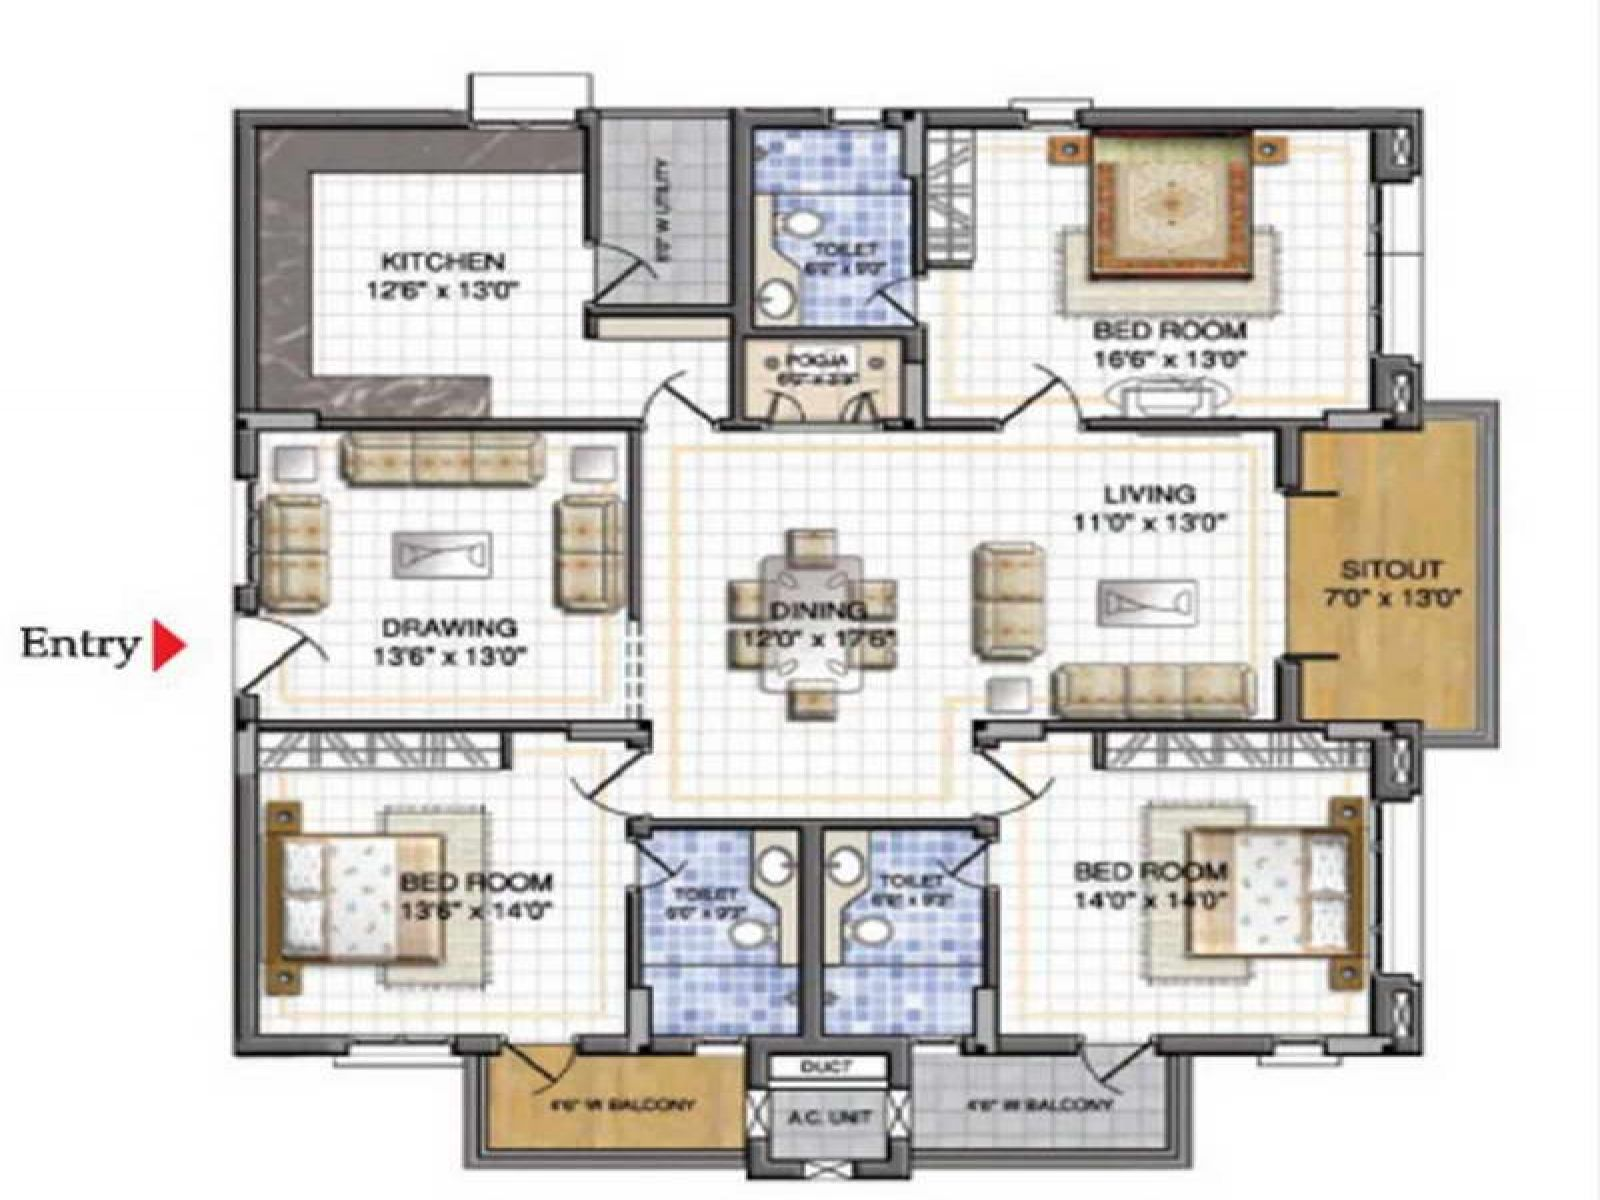 Home Plan Design Online Plans Amusing Plan Design Software Windows Floor Free Online Terms Copyright . Design Inspiration